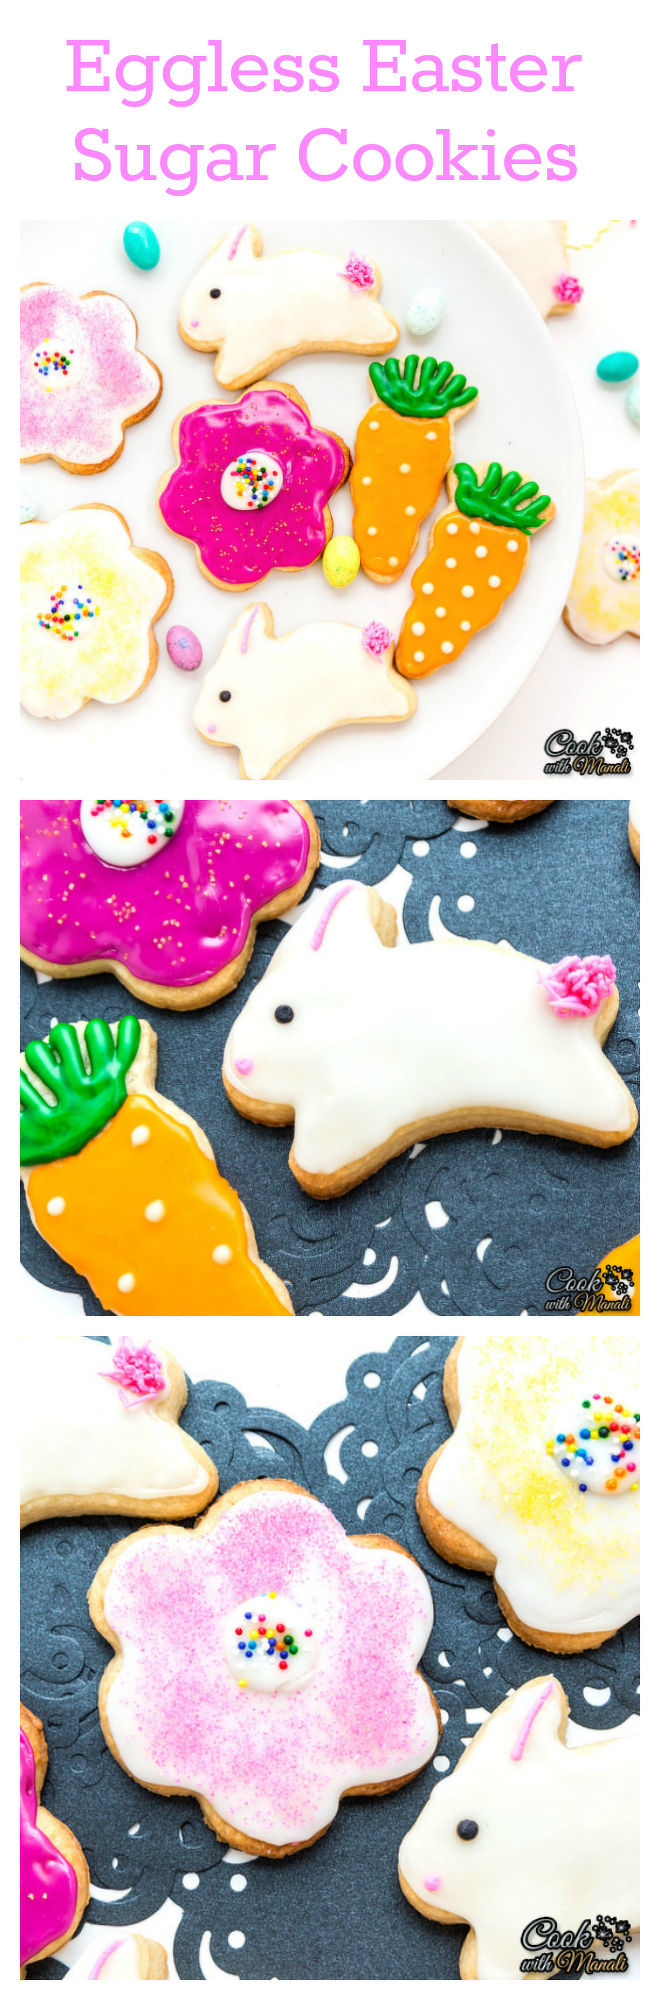 Easter-Eggless-Sugar-Cookies-Collage-nocwm